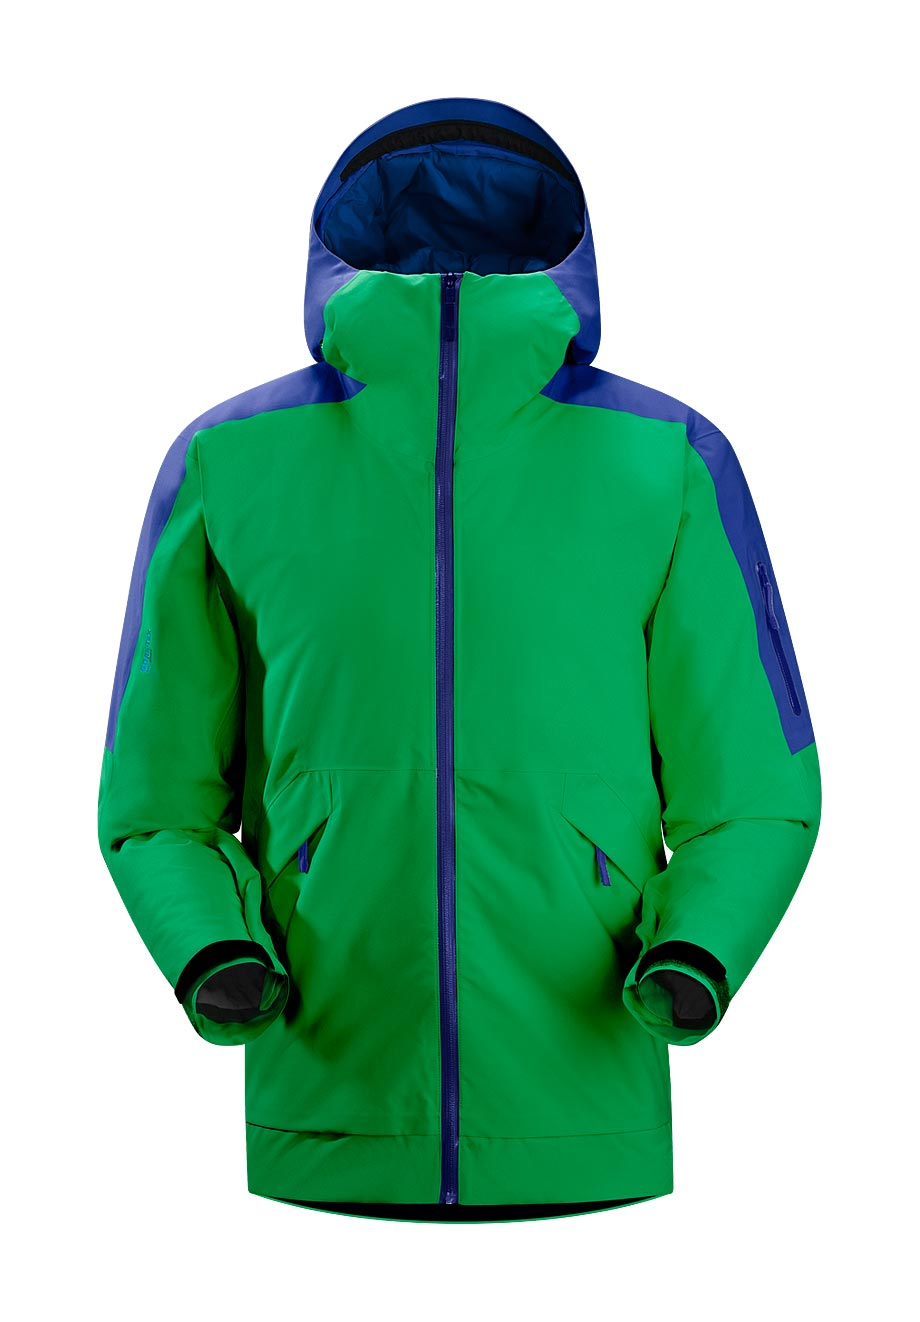 6624b4d4b92 Arcteryx Lichen Fission SV Jacket | Arc'teryx Jackets Men Online Sale!